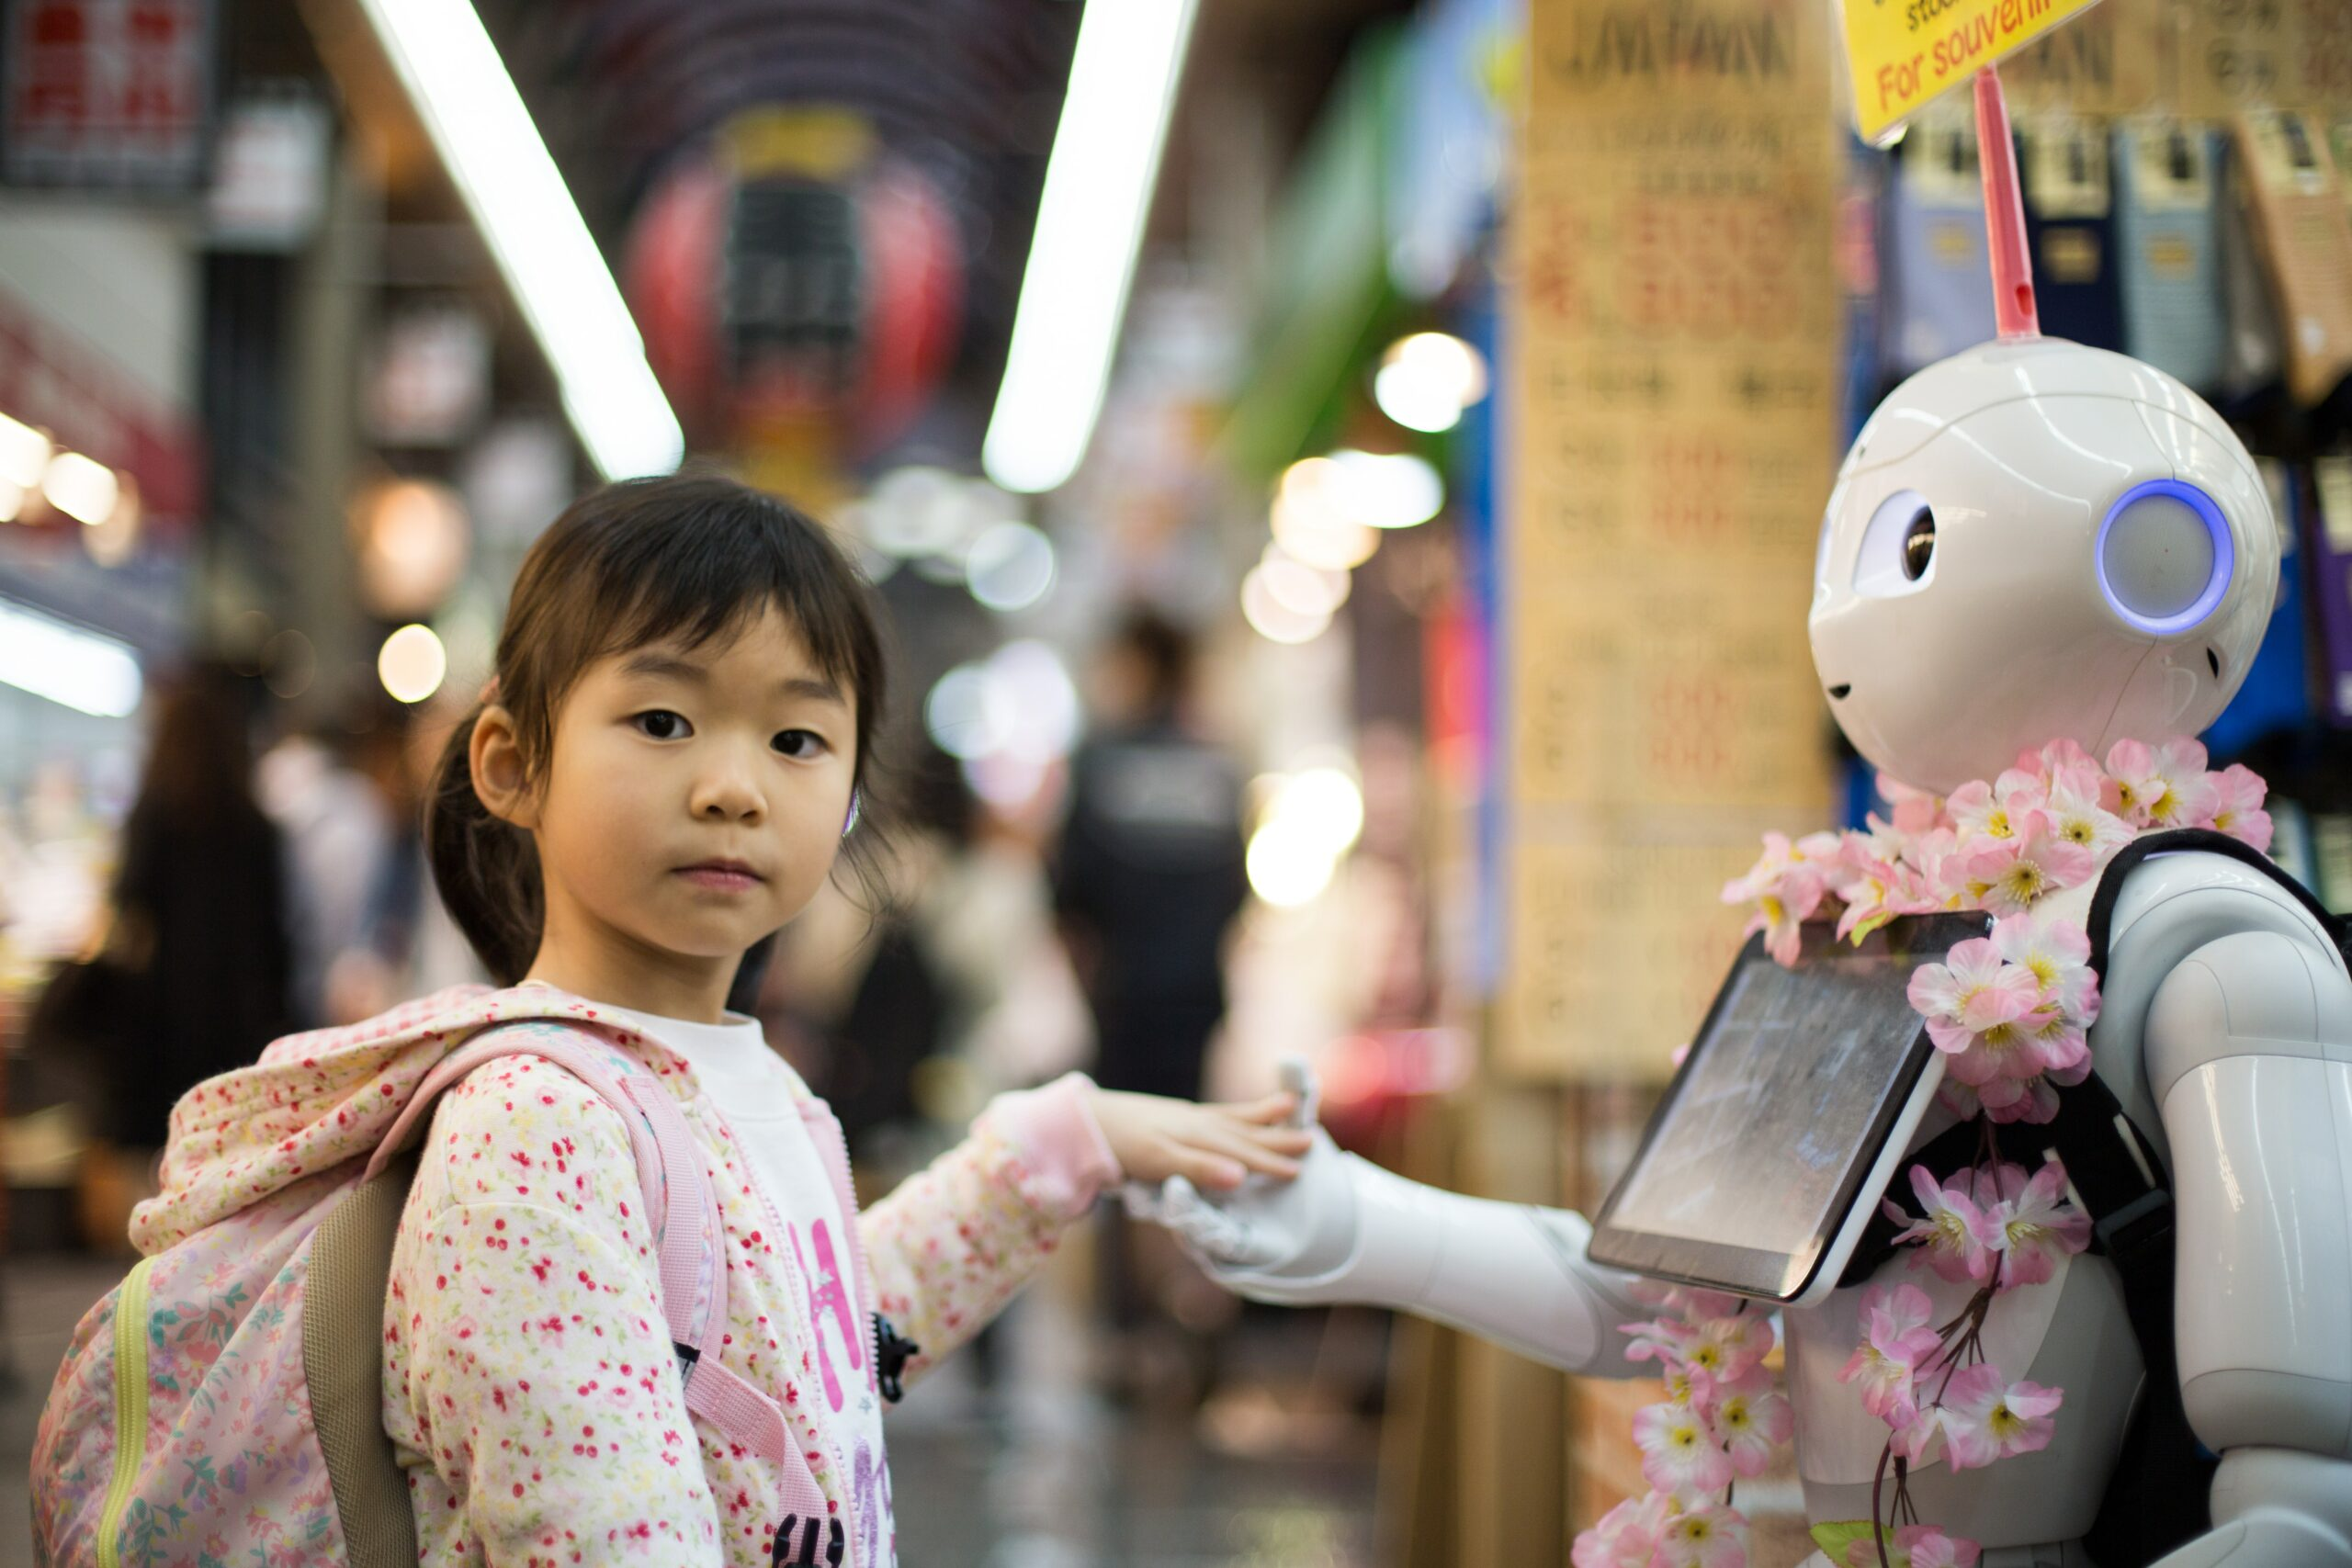 Becoming Robots or Humans?